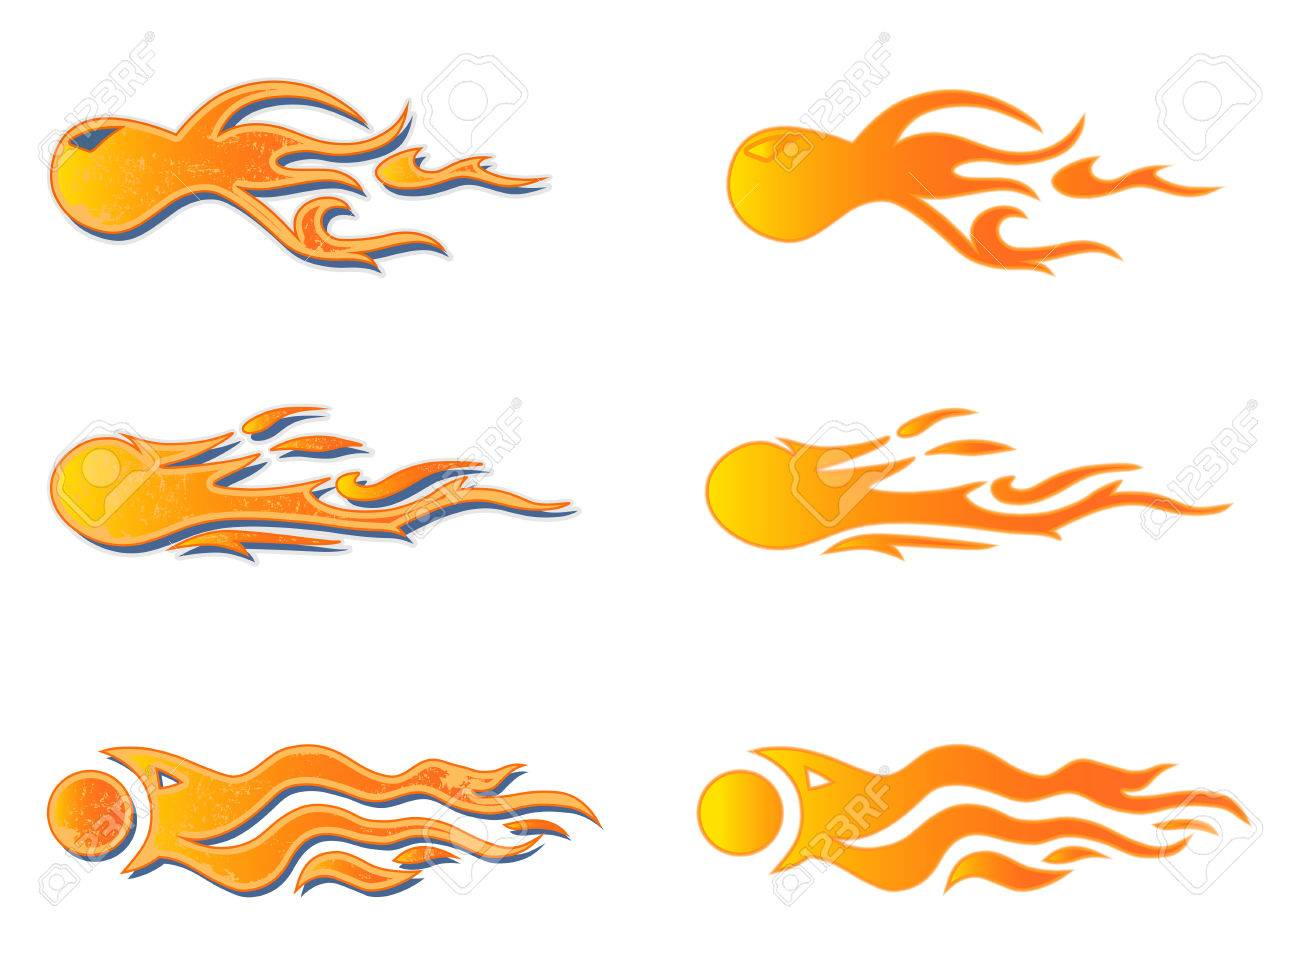 Vehicle Graphics Stripe Hot Rod Racing Flame Graffiti Car Decal Vinyl Ready Graphic Design Vector Illustration Royalty Free Cliparts Vetores E Ilustracoes Stock Image 81225494